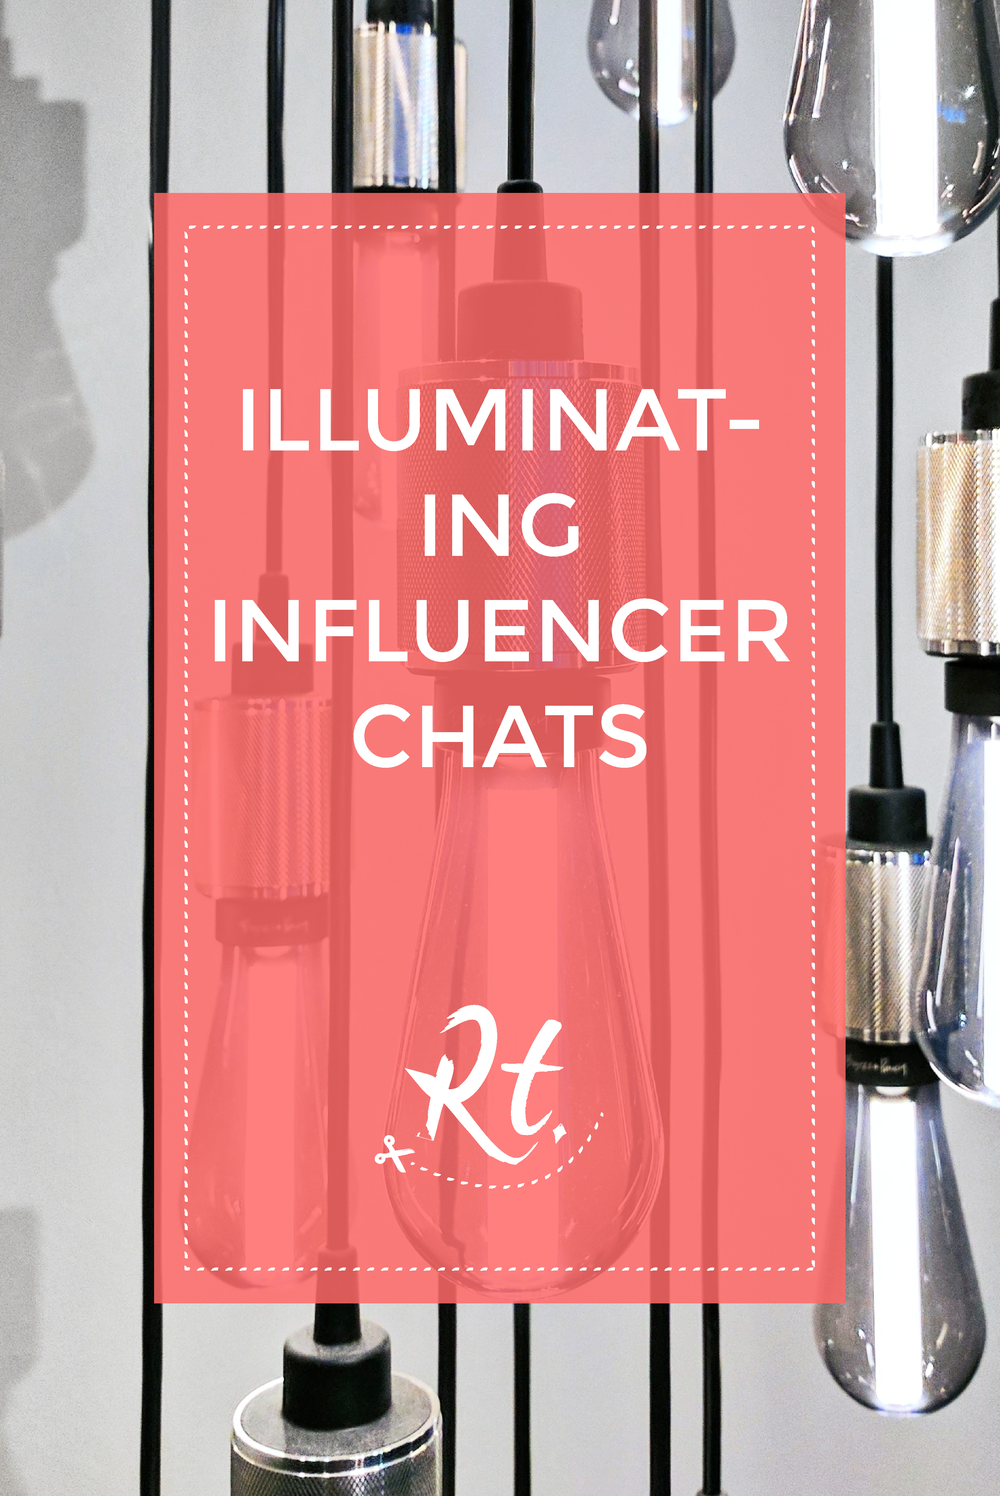 Illuminating Influencer Chats by Rosh Thanki, exposed hanging bulbs from Buster and Punch